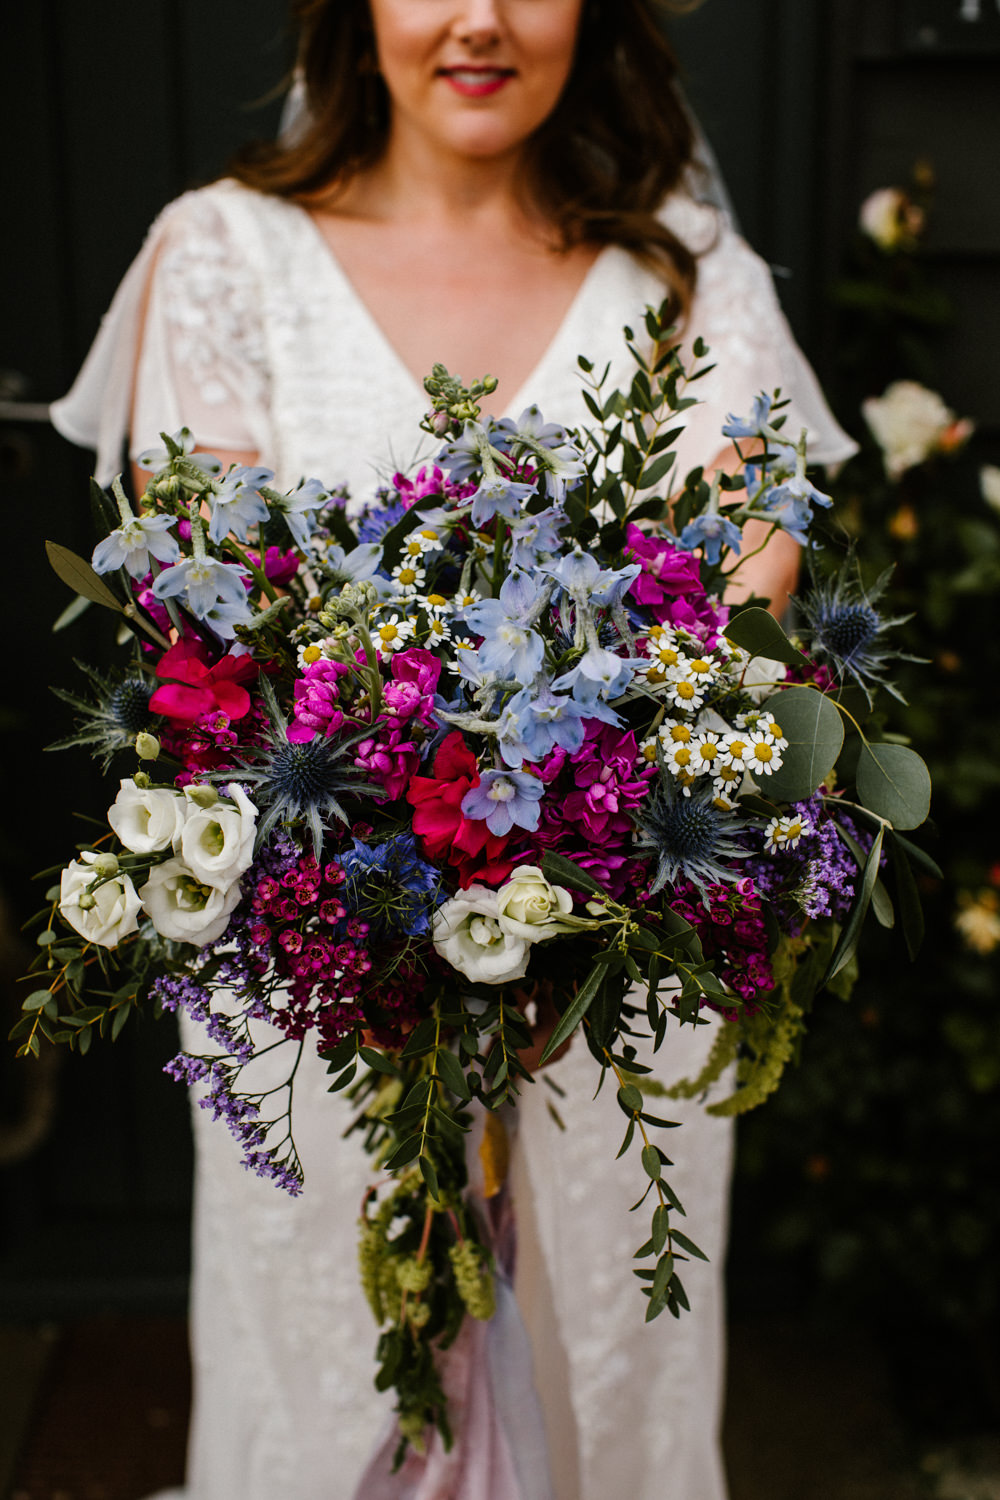 Bouquet Flowers Bride Bridal Lithianthus Daisy Thistle Wax Flower Pink Blue Titchwell Manor Wedding Honey and The Moon Photography